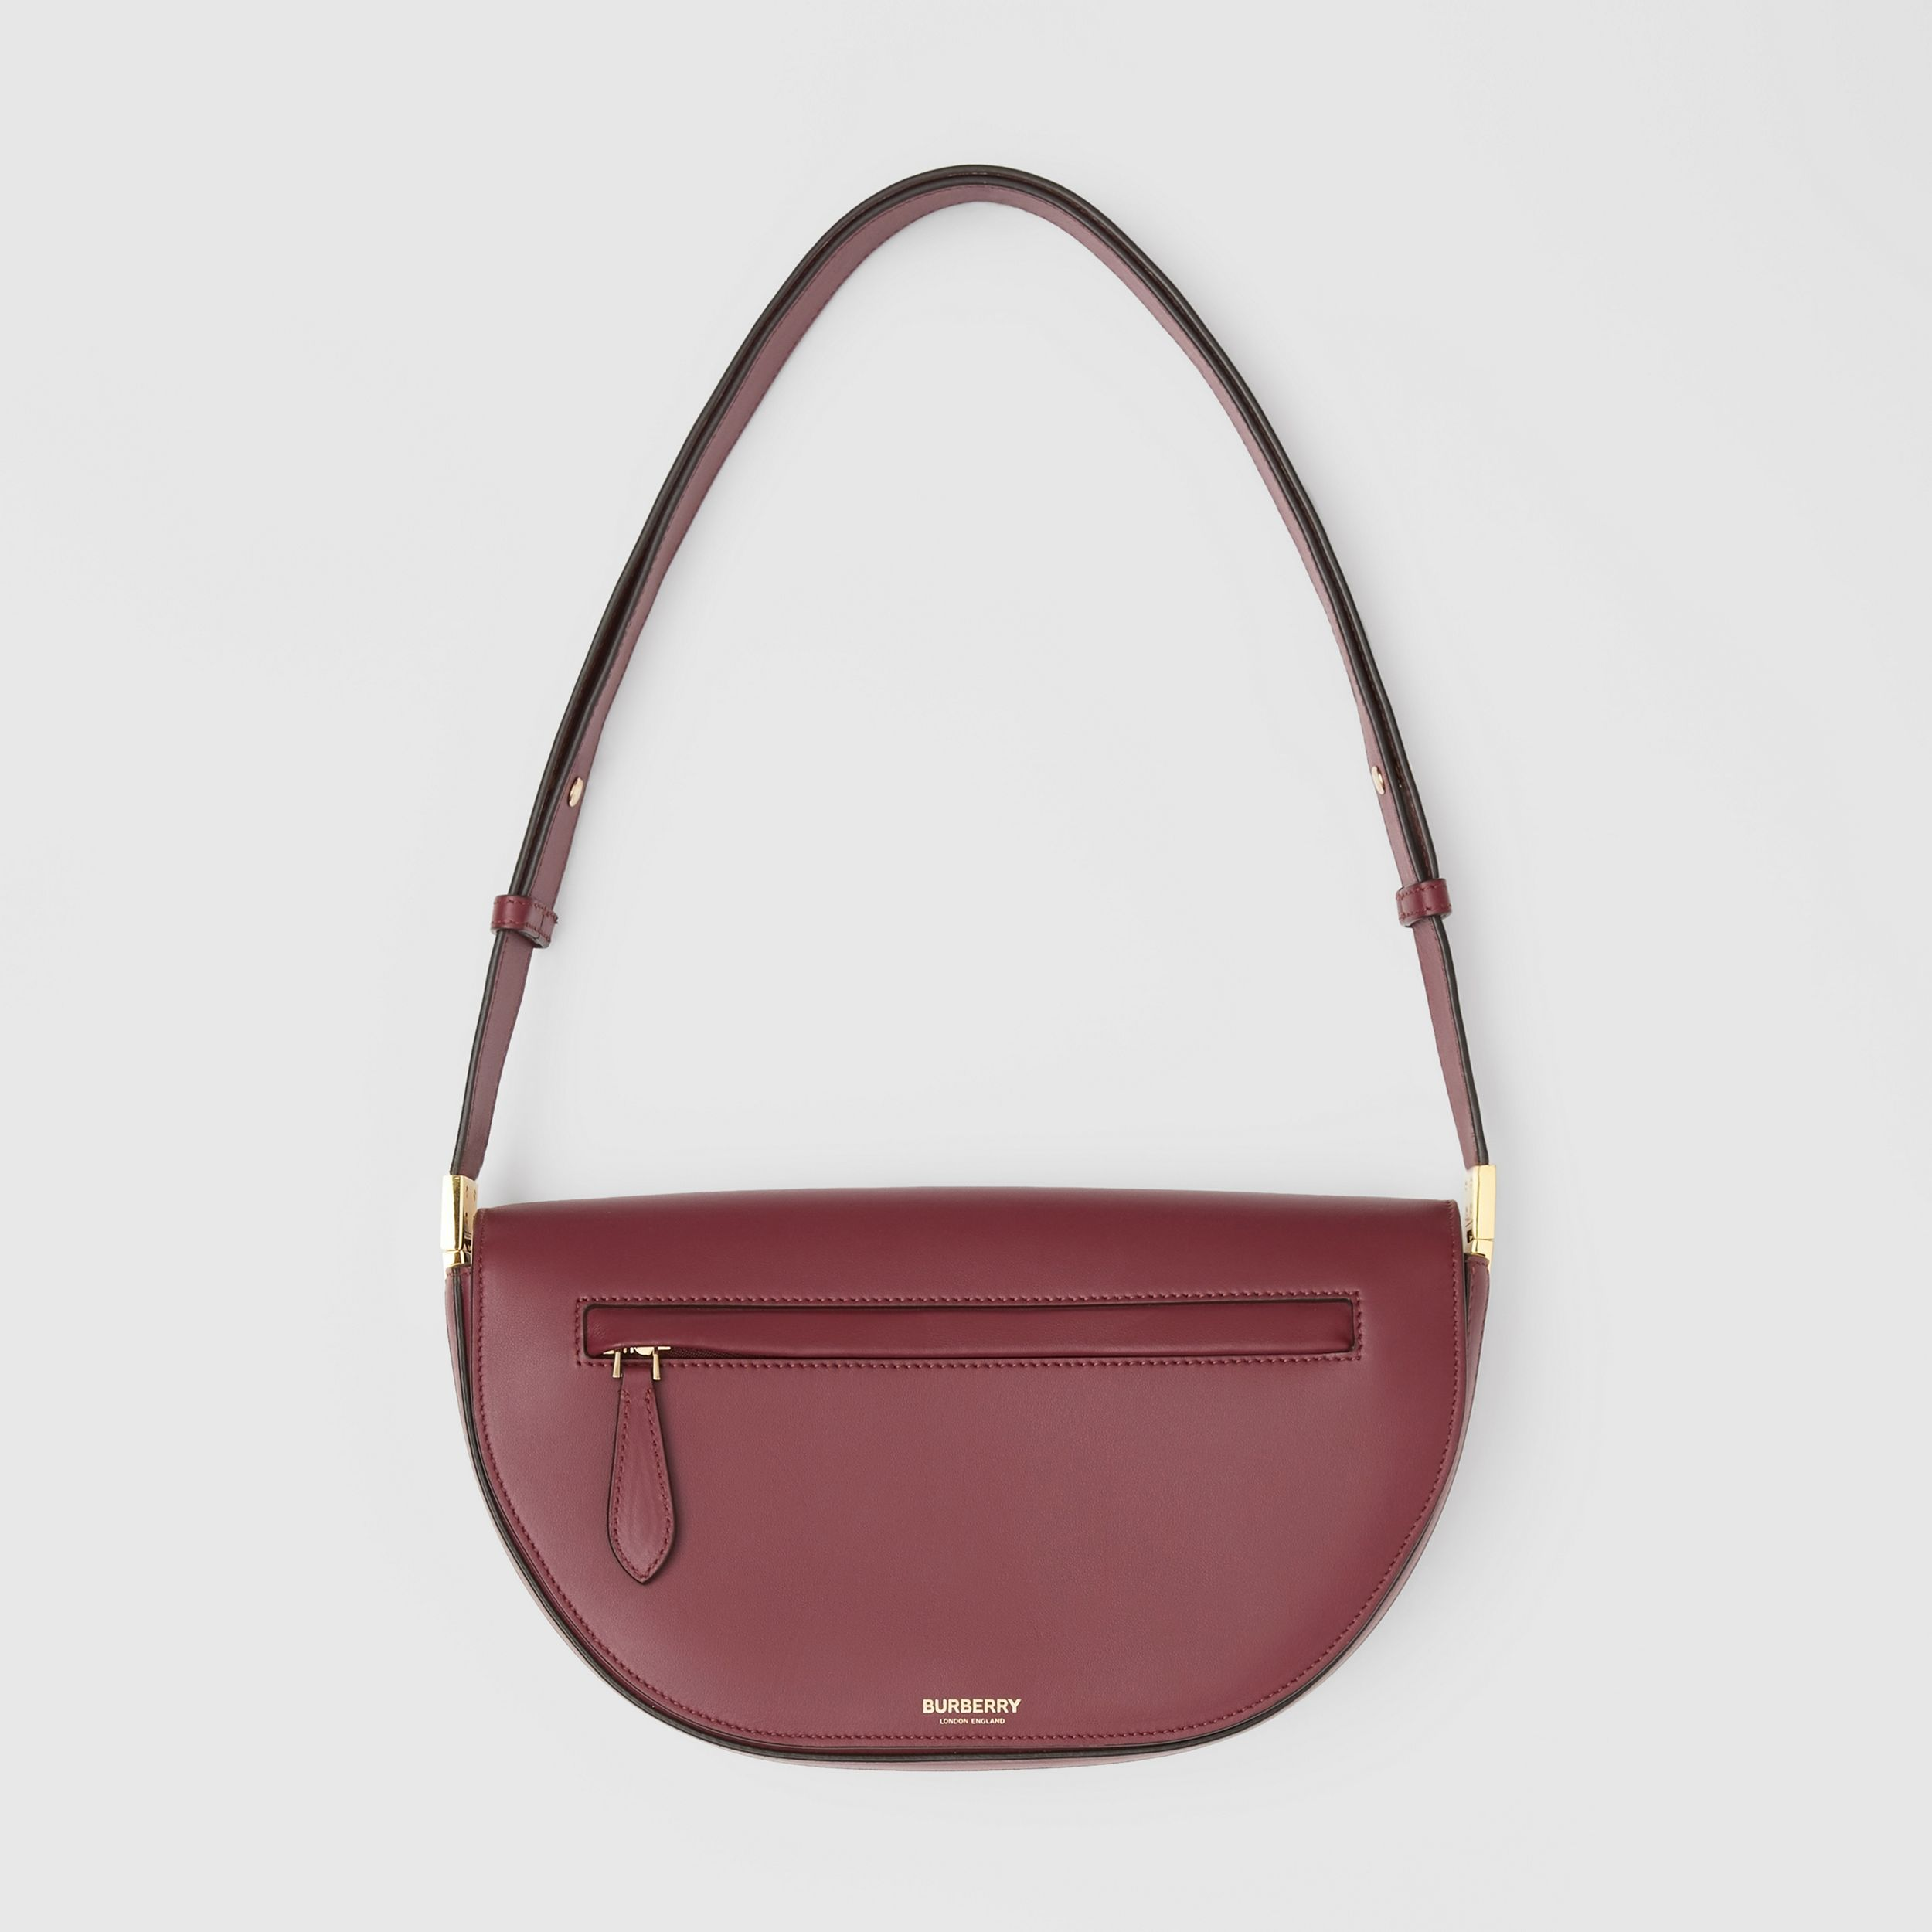 Small Leather Olympia Bag in Burgundy | Burberry - 1